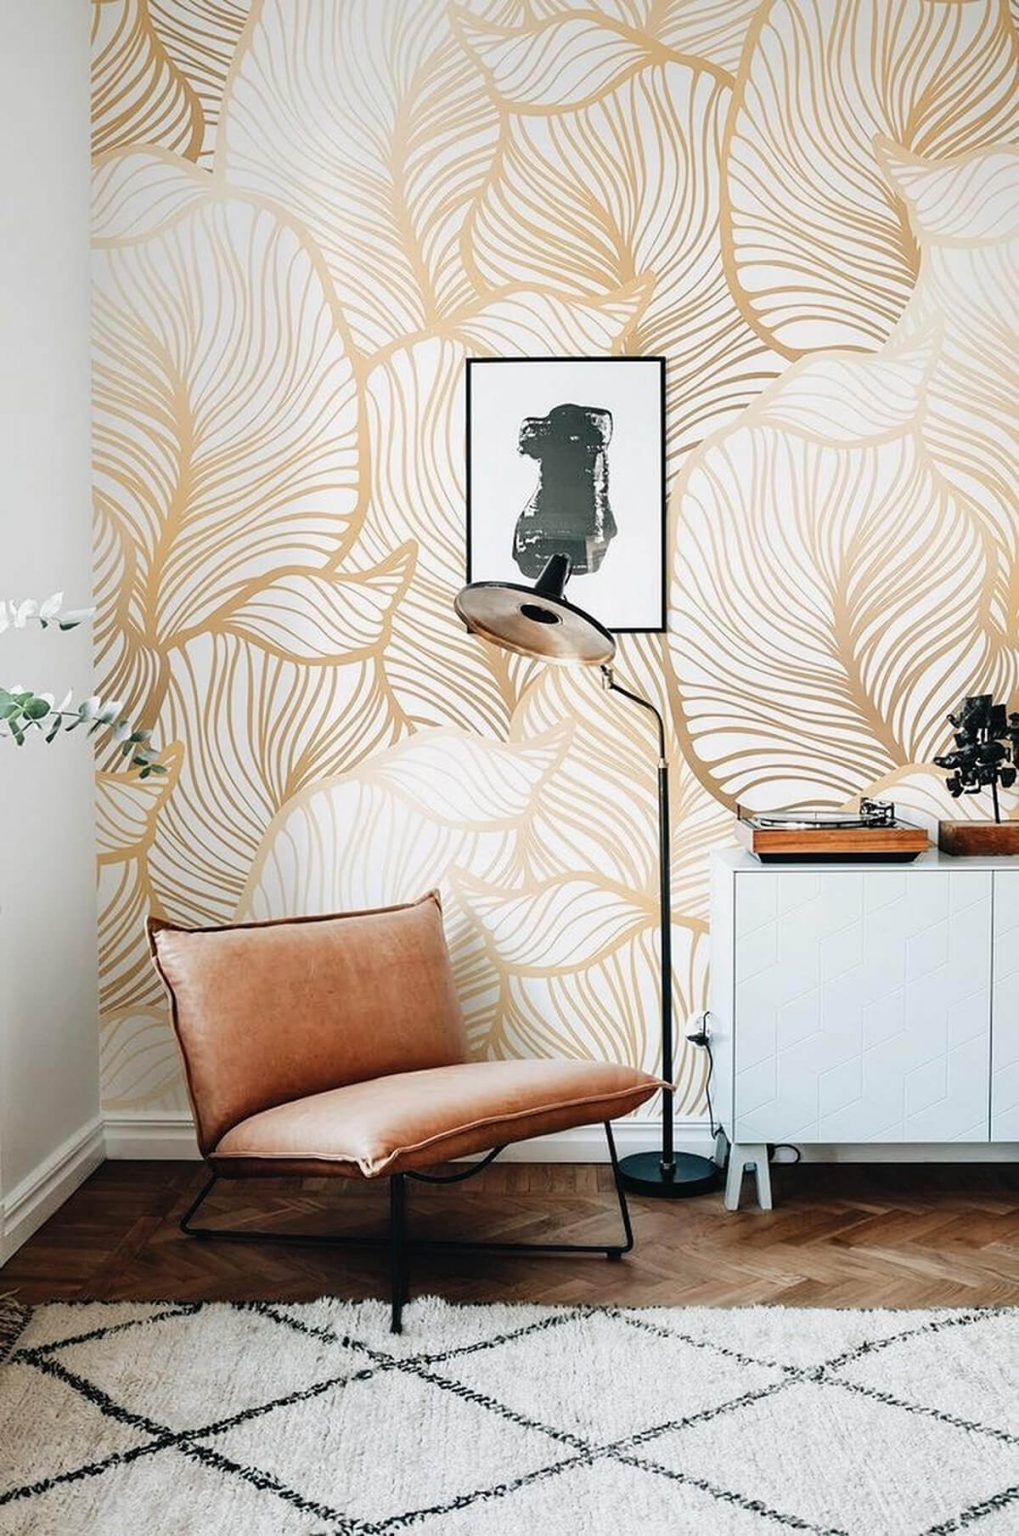 14 Striking Wall Design Ideas To Get Your Creativity Flowing In 2021 Living Room Wall Designs Wall Decor Bedroom Wallpaper Accent Wall Living room accent wallpaper